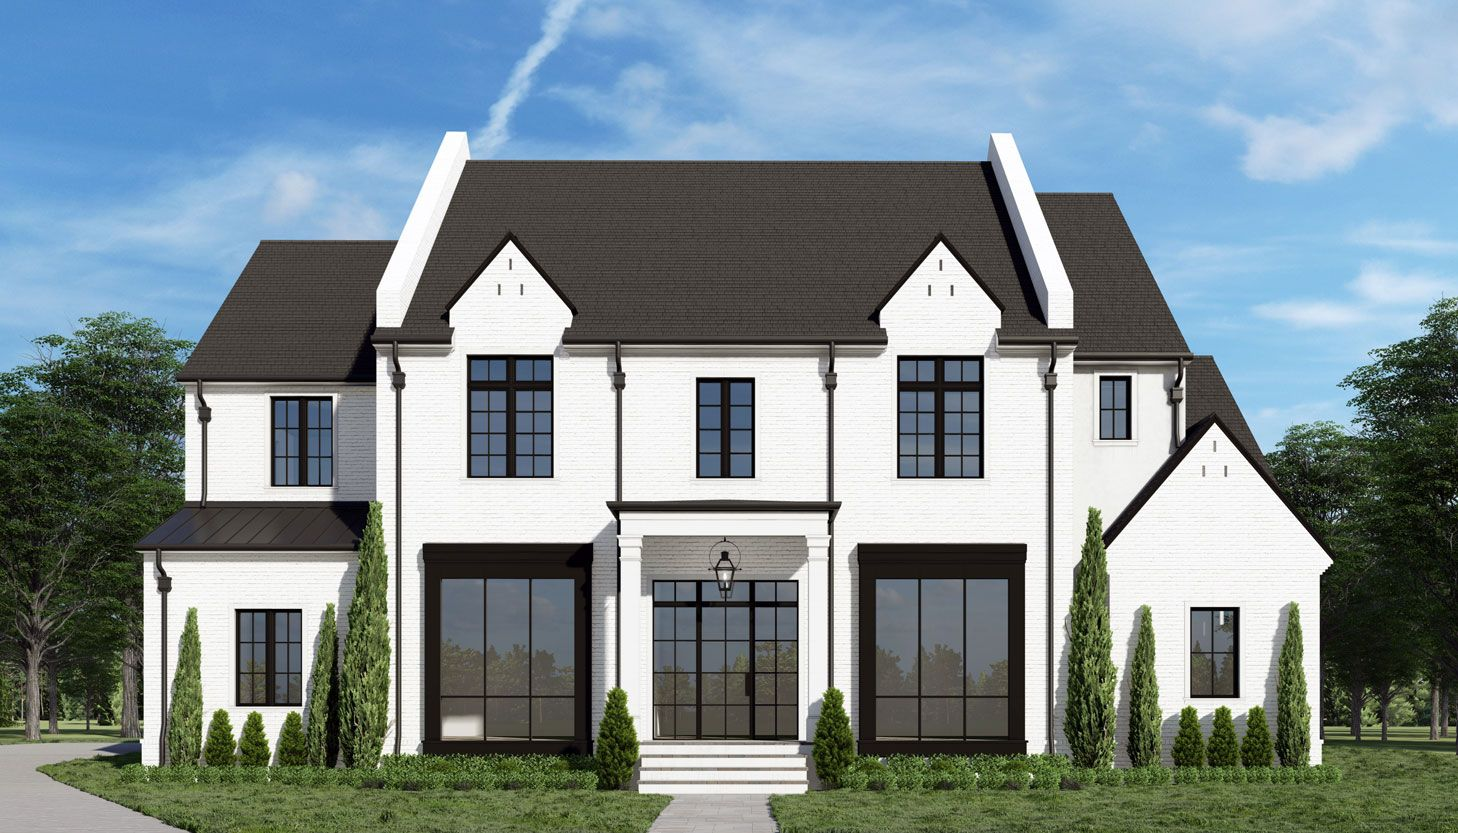 606-Tall-OAks-Stephen-Ploue-Parade-of-Homes.jpeg